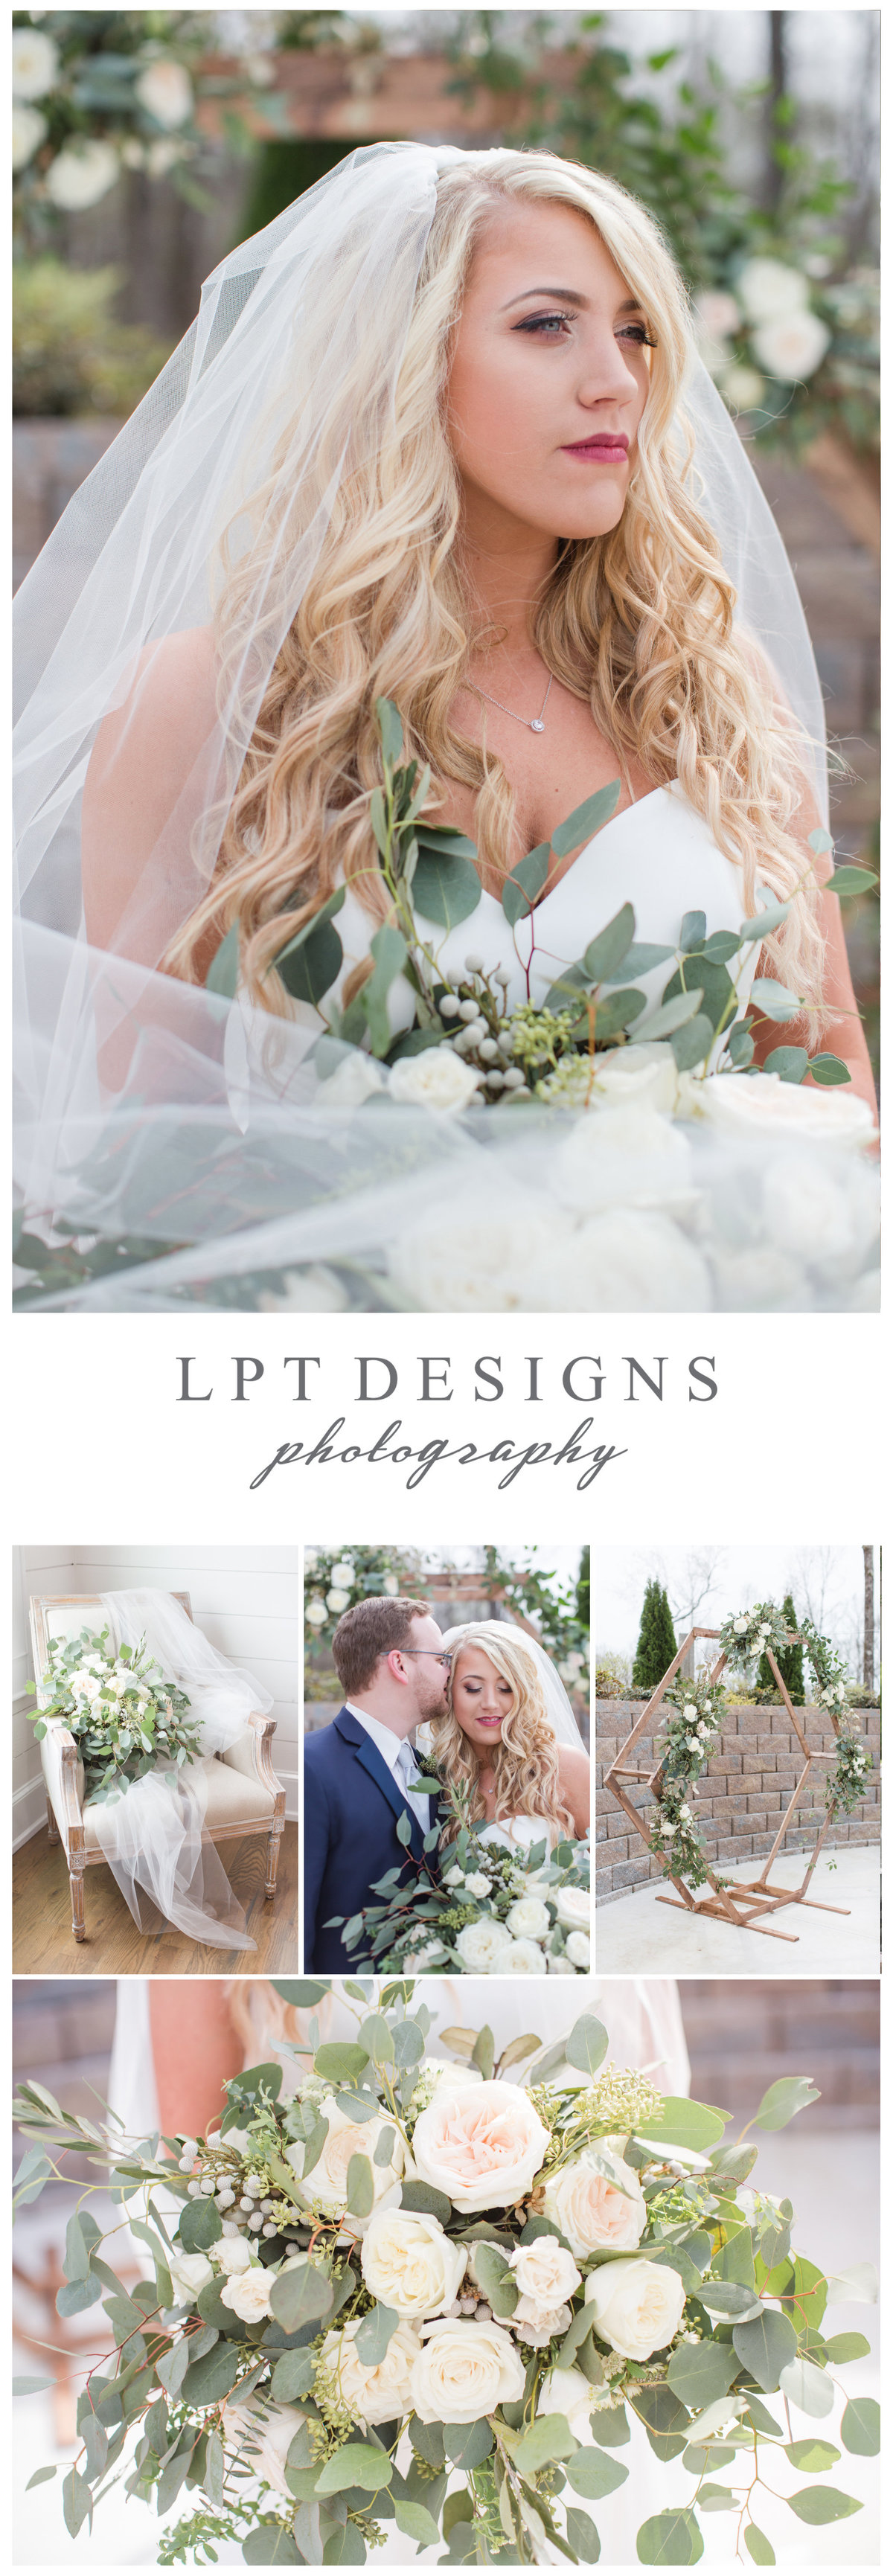 lpt_designs_photography_lydia_thrift_gadsden_alabama_fine_art_wedding_photographer_mt_1